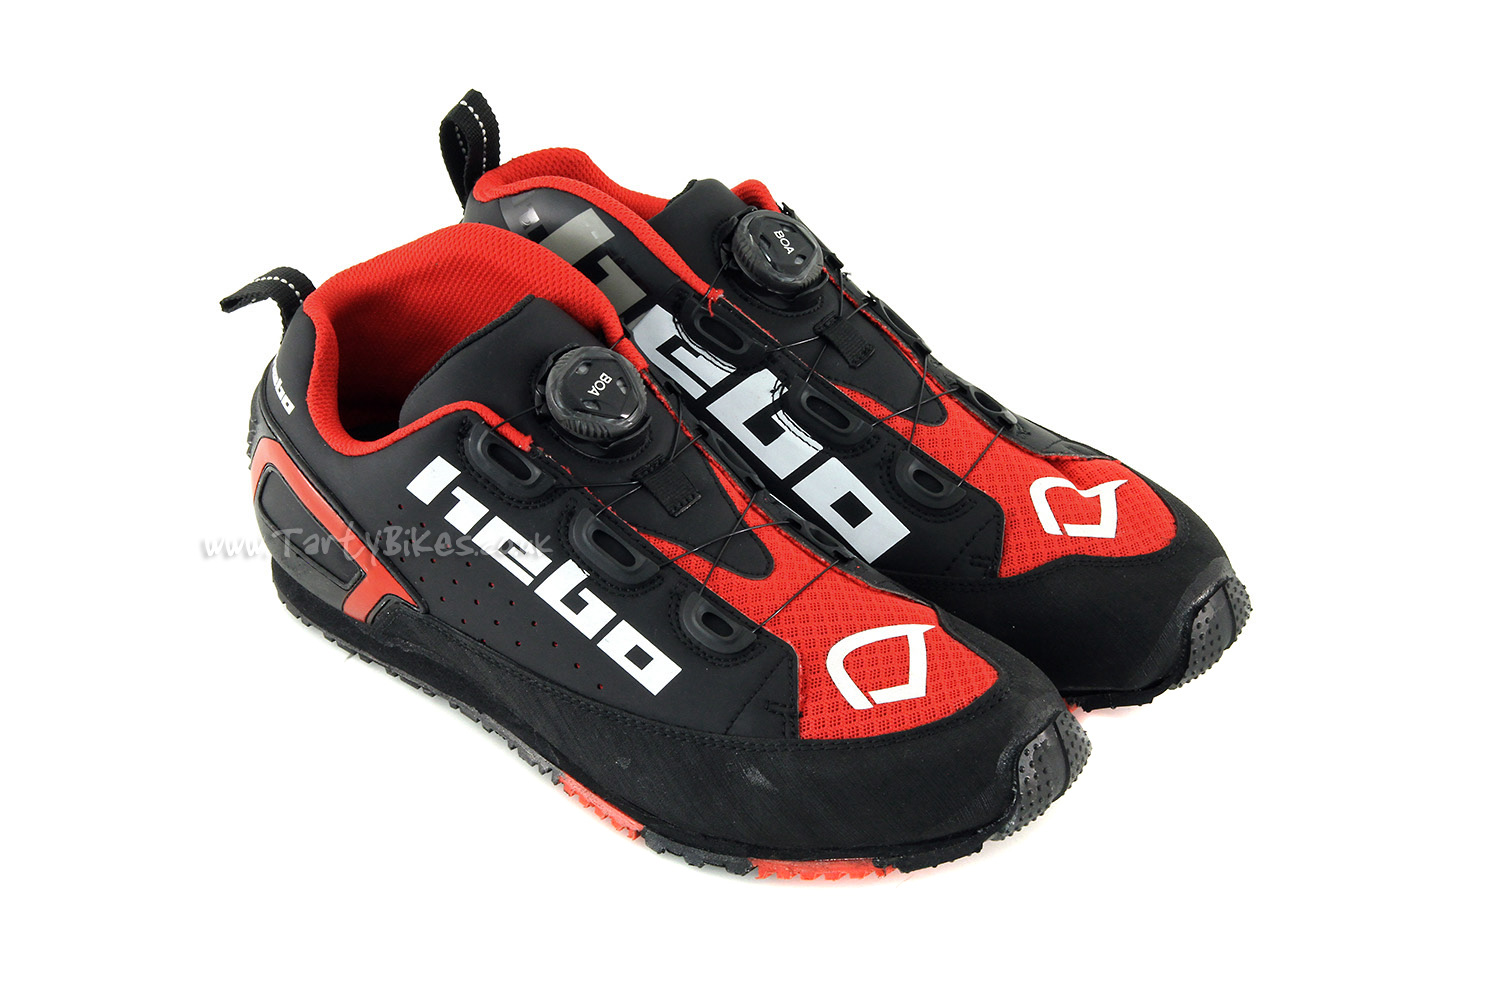 Hebo Bunnyhop Shoes